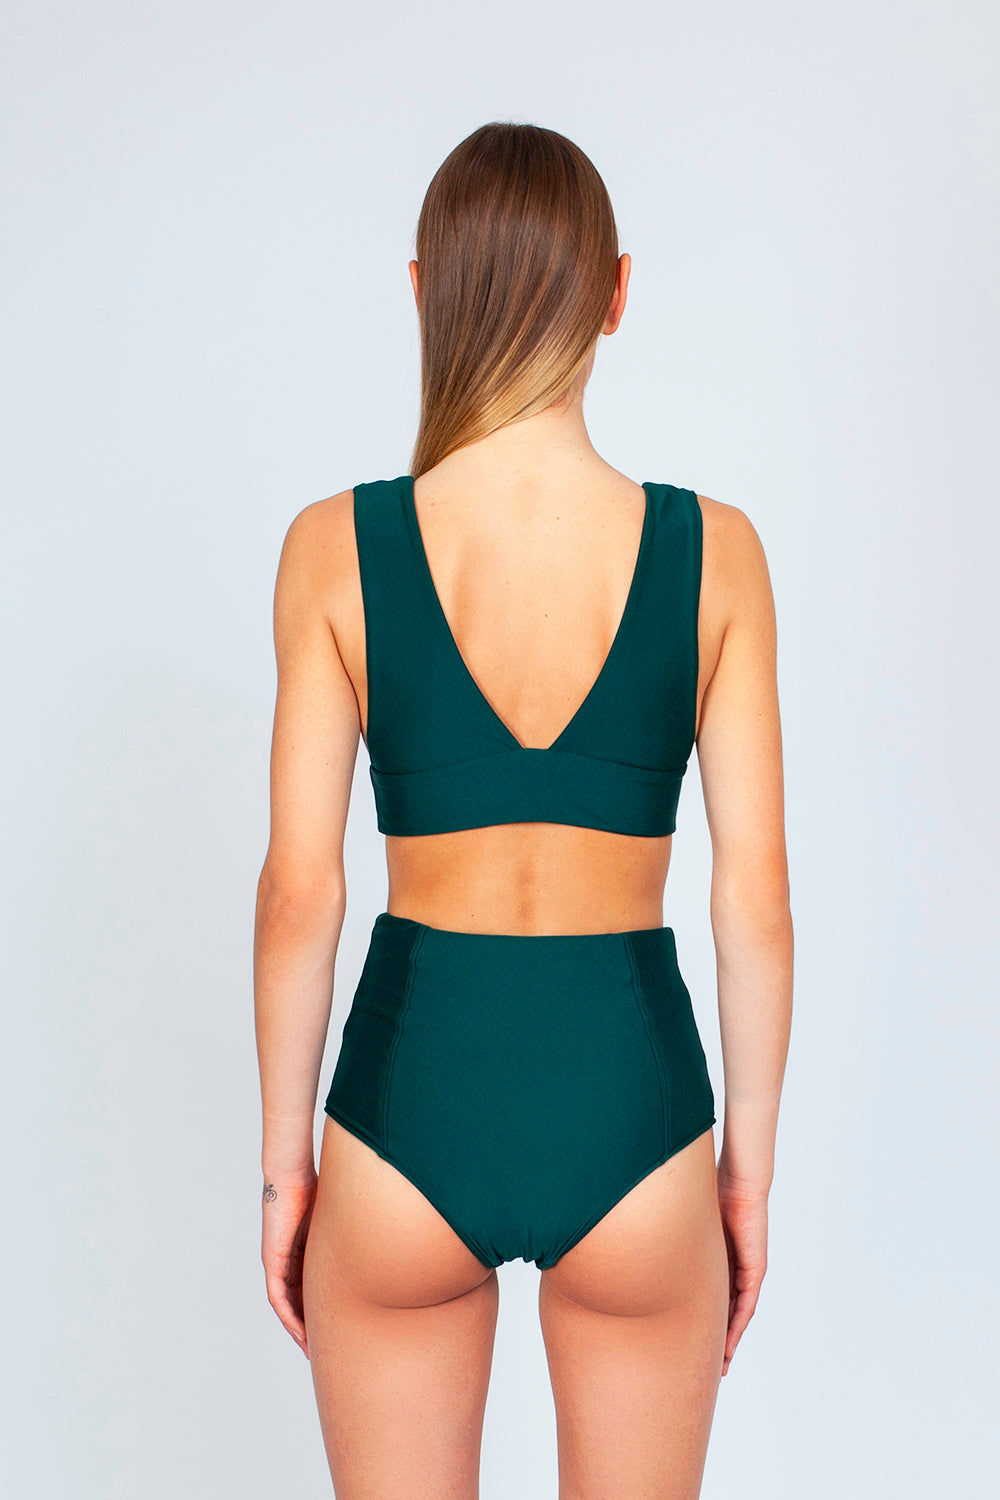 THE ONES WHO Dive Long Triangle Bikini Top - Emerald Green Bikini Top | Emerald Green| The Ones Who Dive Long Triangle Bikini Top - Emerald Green Long triangle top  V neckline  Thick bra band  V Back  Pull over  Made in LA  Fabric: 80% Nylon 20% Elastane Back View